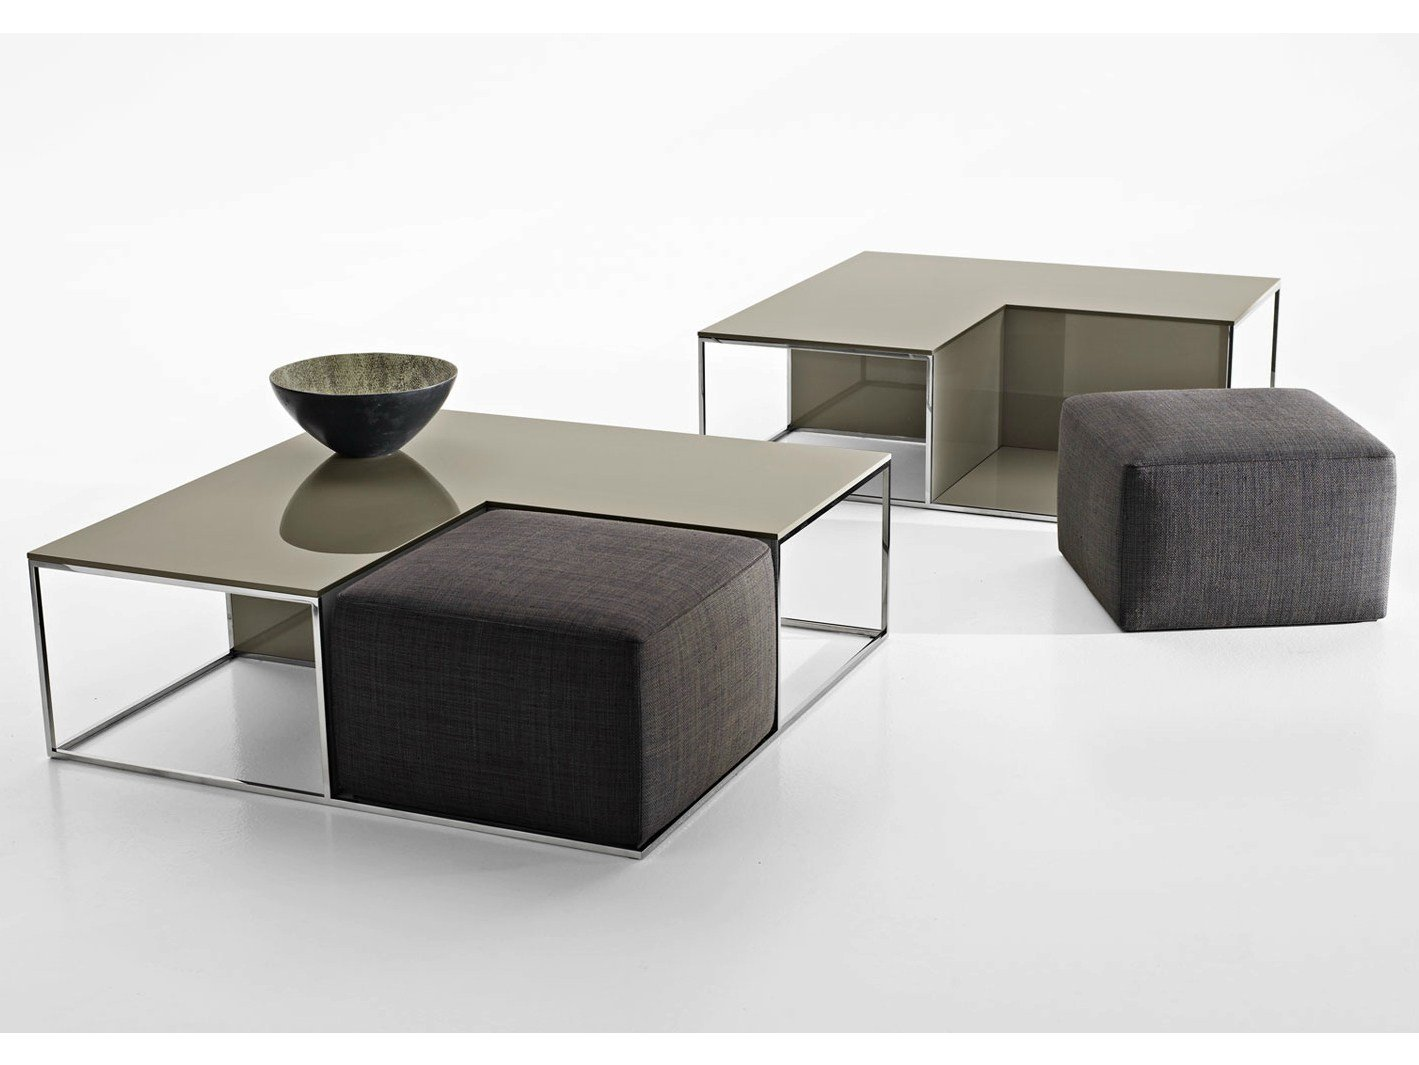 Pouf  coffee table AREA by B&B Italia design Paolo Piva